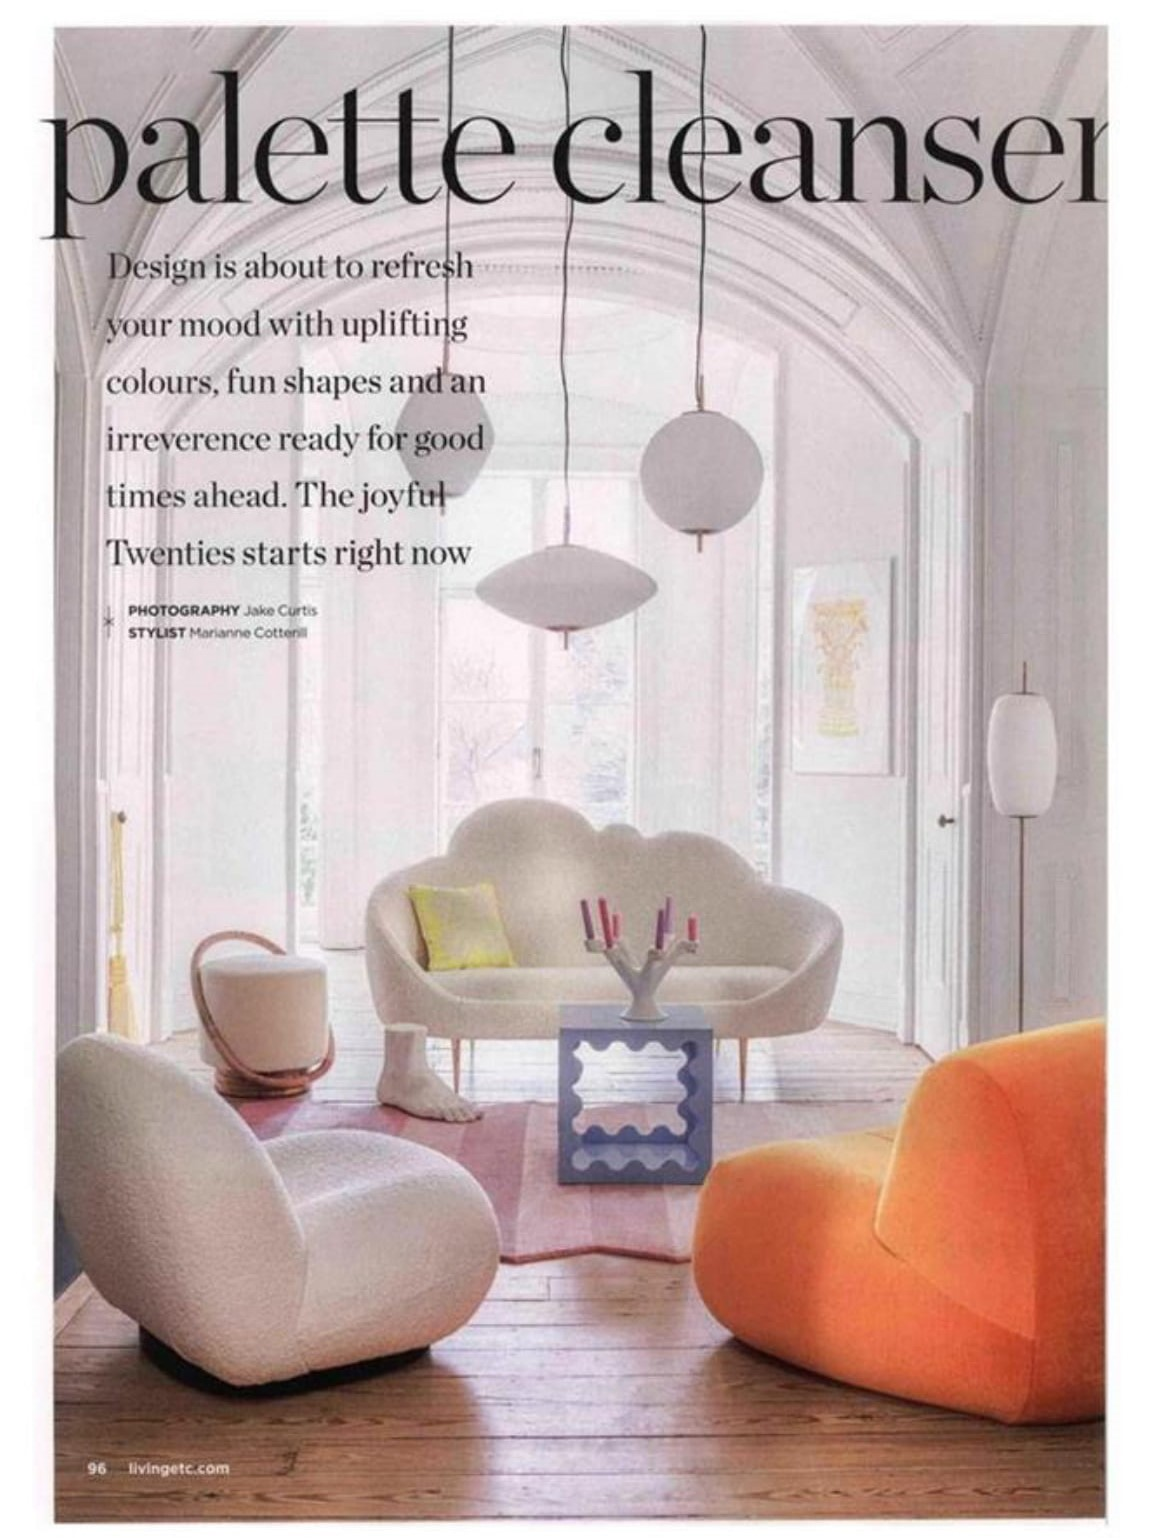 Living Etc are all for uplifting colours and fun shapes with Jonathan Adlers Ether sofa, Ripple cube and Ligne Roset's Pukka chair